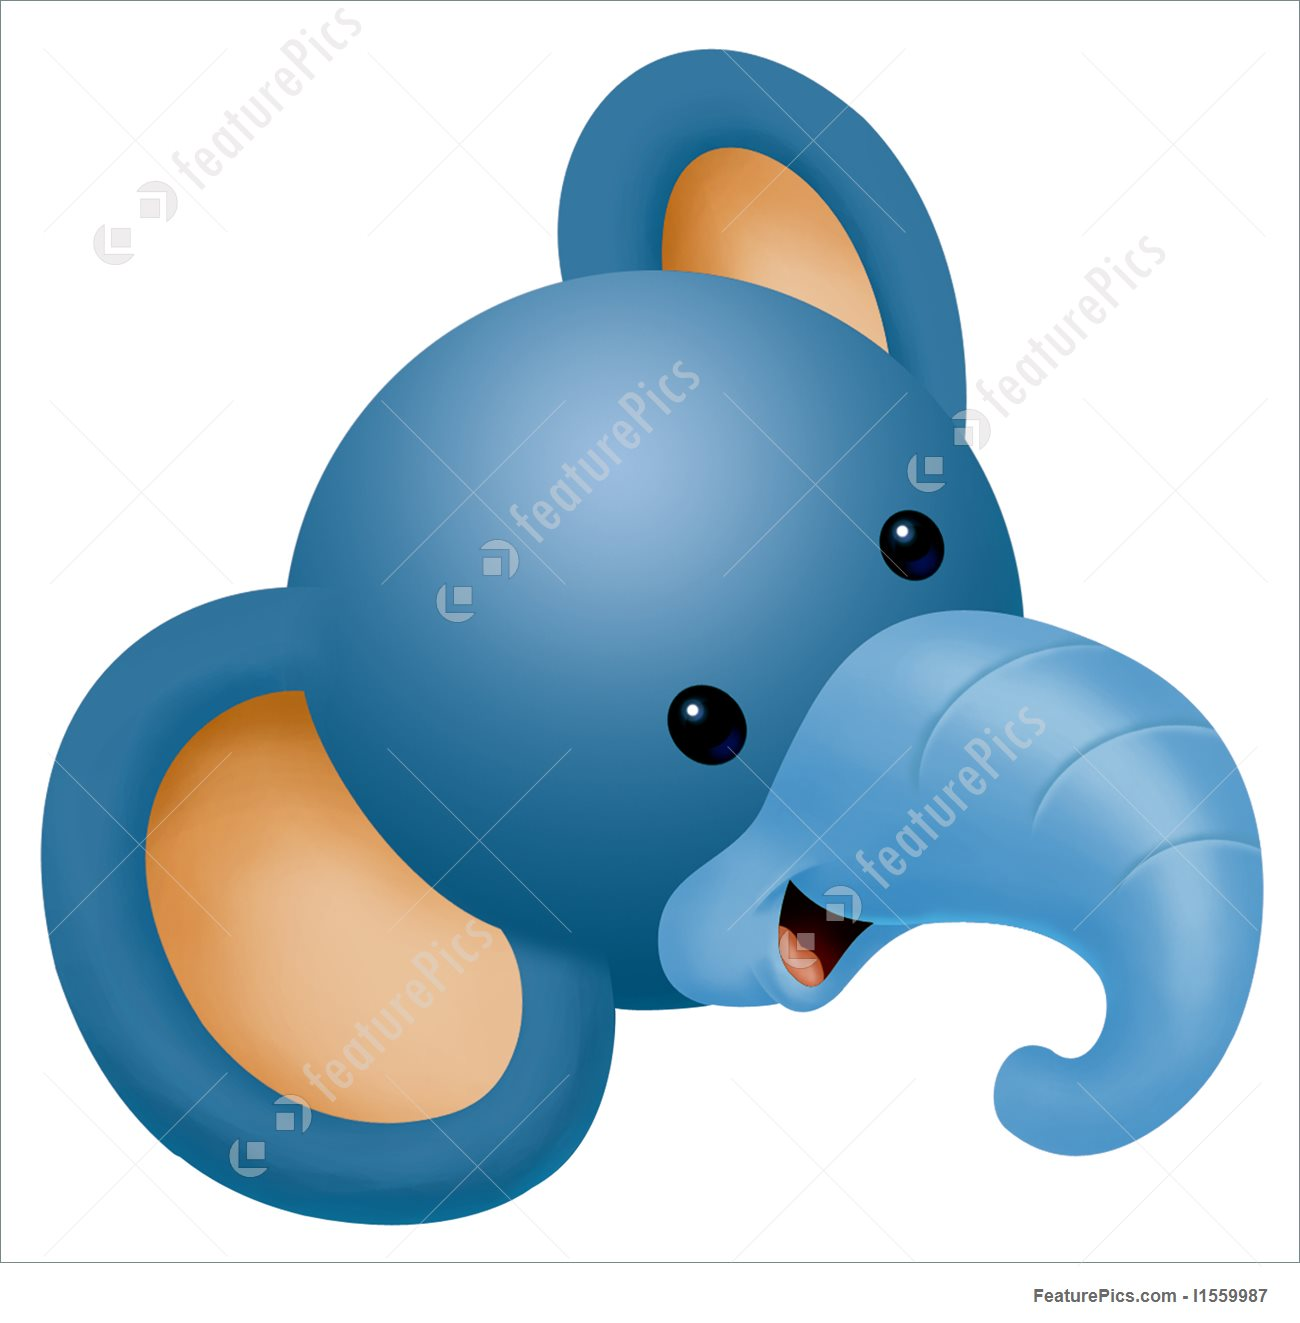 Elephant Head Clipart at GetDrawings.com.